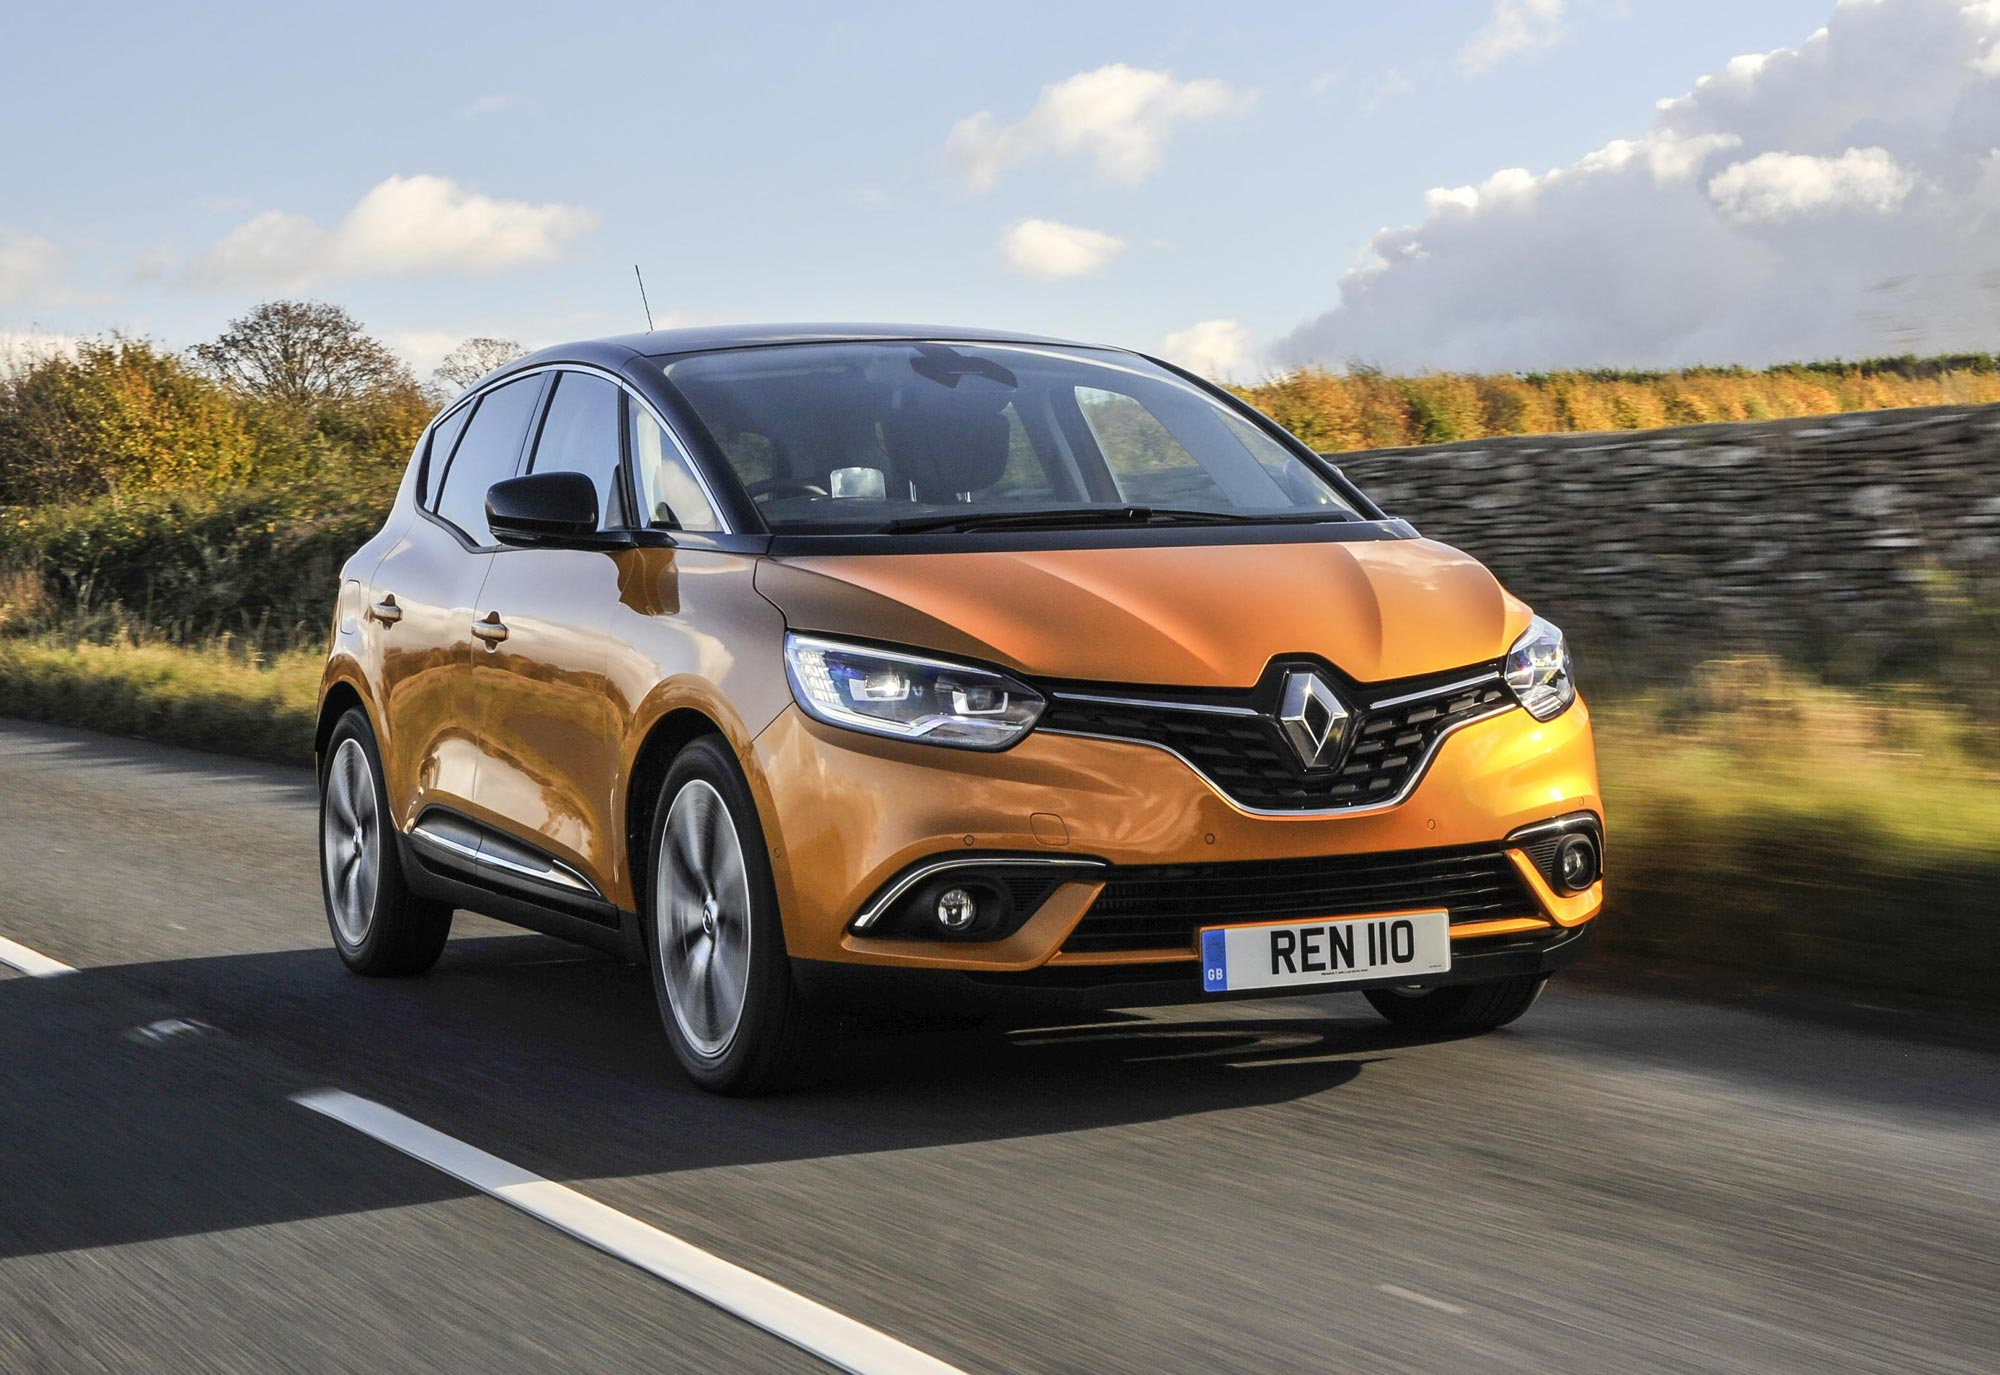 Renault_announce_new_retail_offers_for_April_(4).jpg